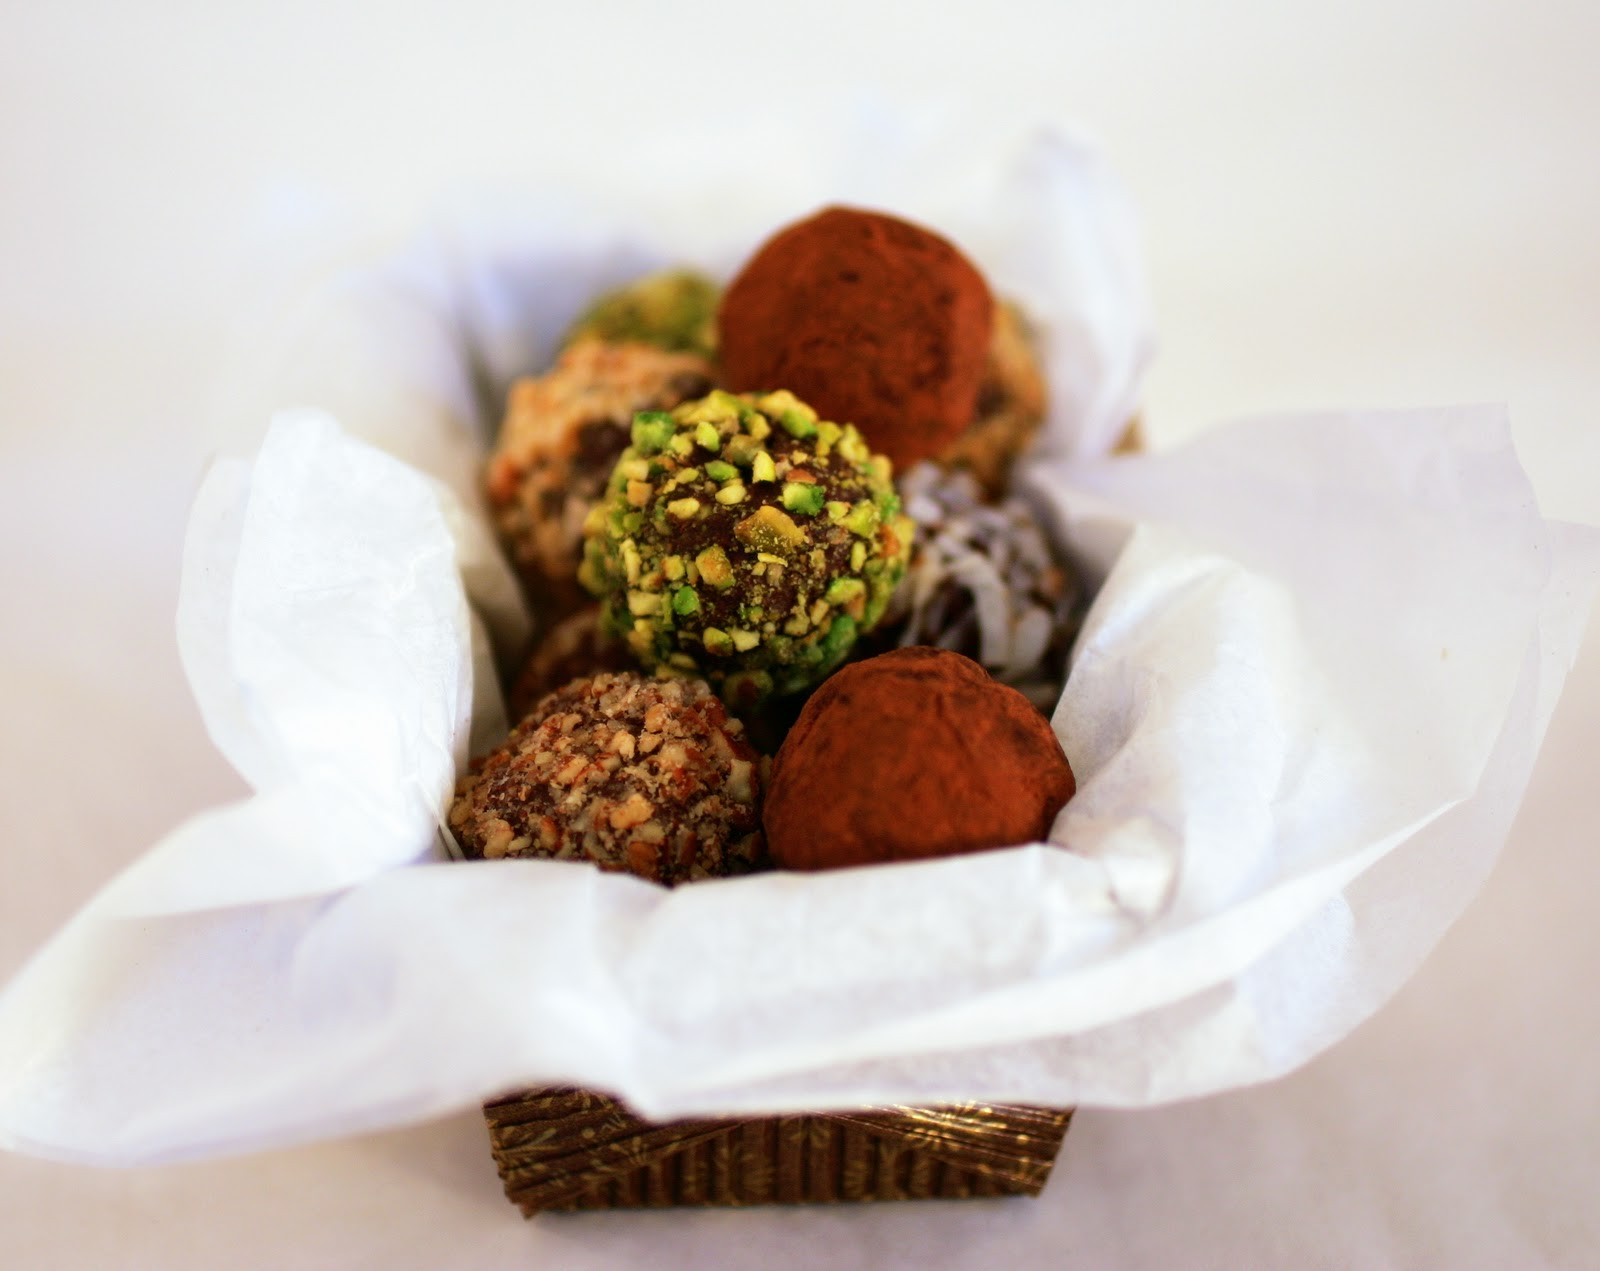 Tish Boyle Sweet Dreams: Holiday Bittersweet Chocolate Truffles